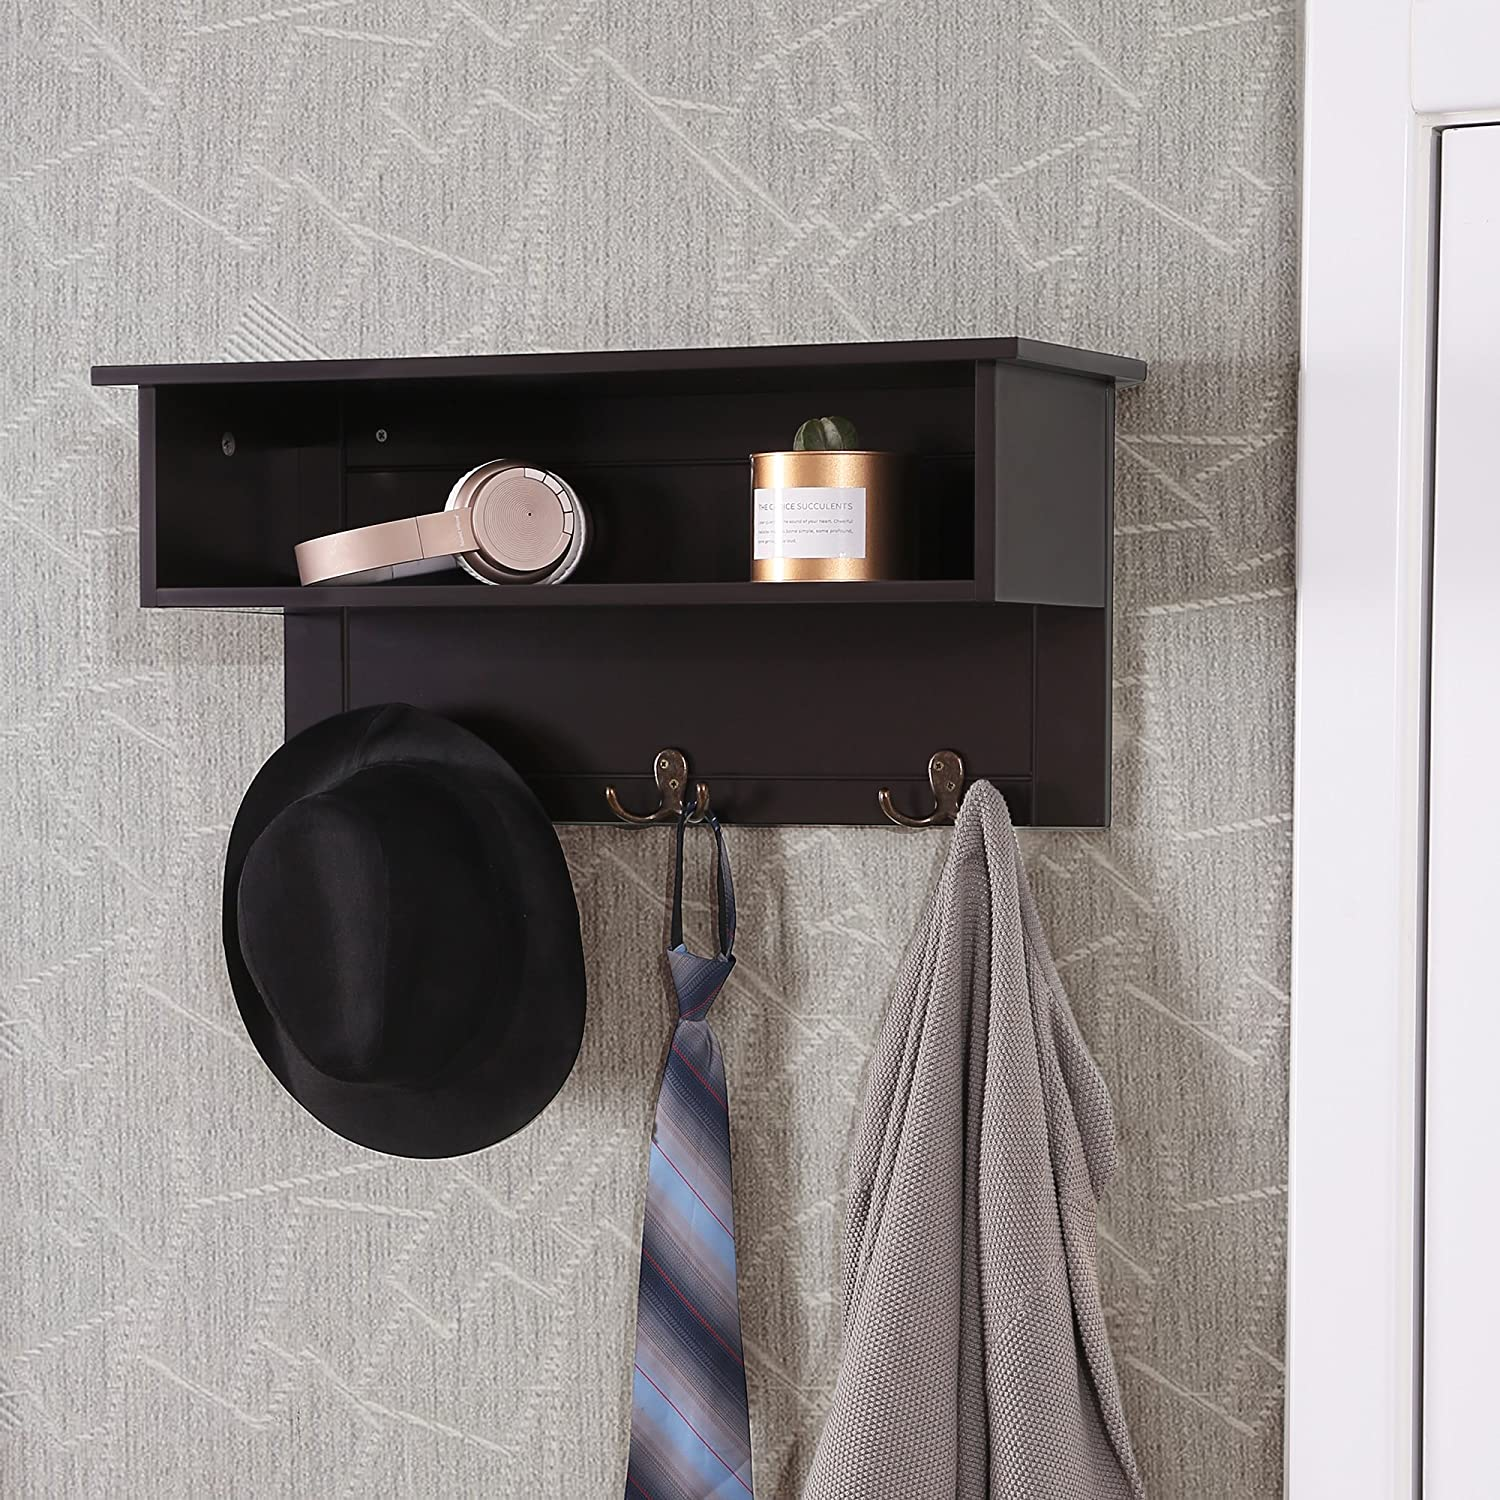 23.6 x 7.9 x 10.6 Inches Espresso ULES01BR with 3 Dual Hooks and Storage VASAGLE Wooden Entryway Hanging Shelf